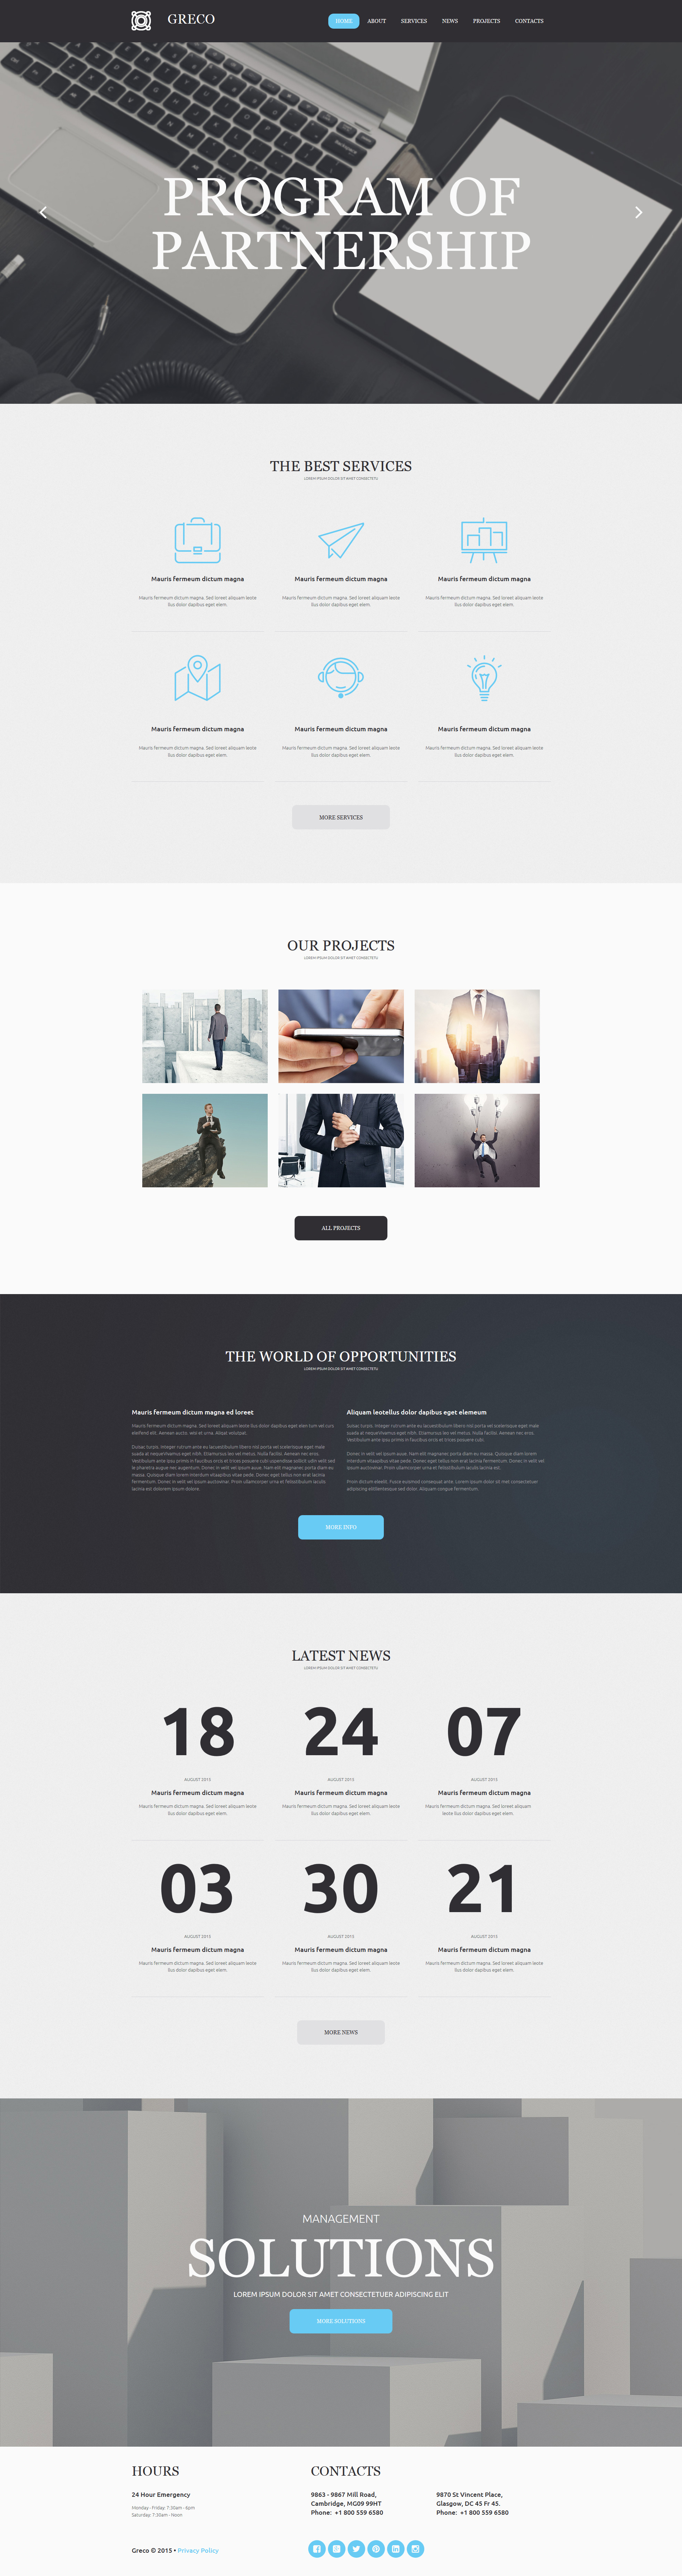 The Greco Business Moto CMS 3 Templates Design 53222, one of the best Moto CMS 3 templates of its kind (business, most popular), also known as greco business Moto CMS 3 template, success company Moto CMS 3 template, enterprise solution Moto CMS 3 template, business Moto CMS 3 template, industry Moto CMS 3 template, technical Moto CMS 3 template, clients Moto CMS 3 template, customer support Moto CMS 3 template, automate Moto CMS 3 template, flow Moto CMS 3 template, services Moto CMS 3 template, plug-in Moto CMS 3 template, flex Moto CMS 3 template, profile Moto CMS 3 template, principles Moto CMS 3 template, web products Moto CMS 3 template, technology system and related with greco business, success company, enterprise solution, business, industry, technical, clients, customer support, automate, flow, services, plug-in, flex, profile, principles, web products, technology system, etc.